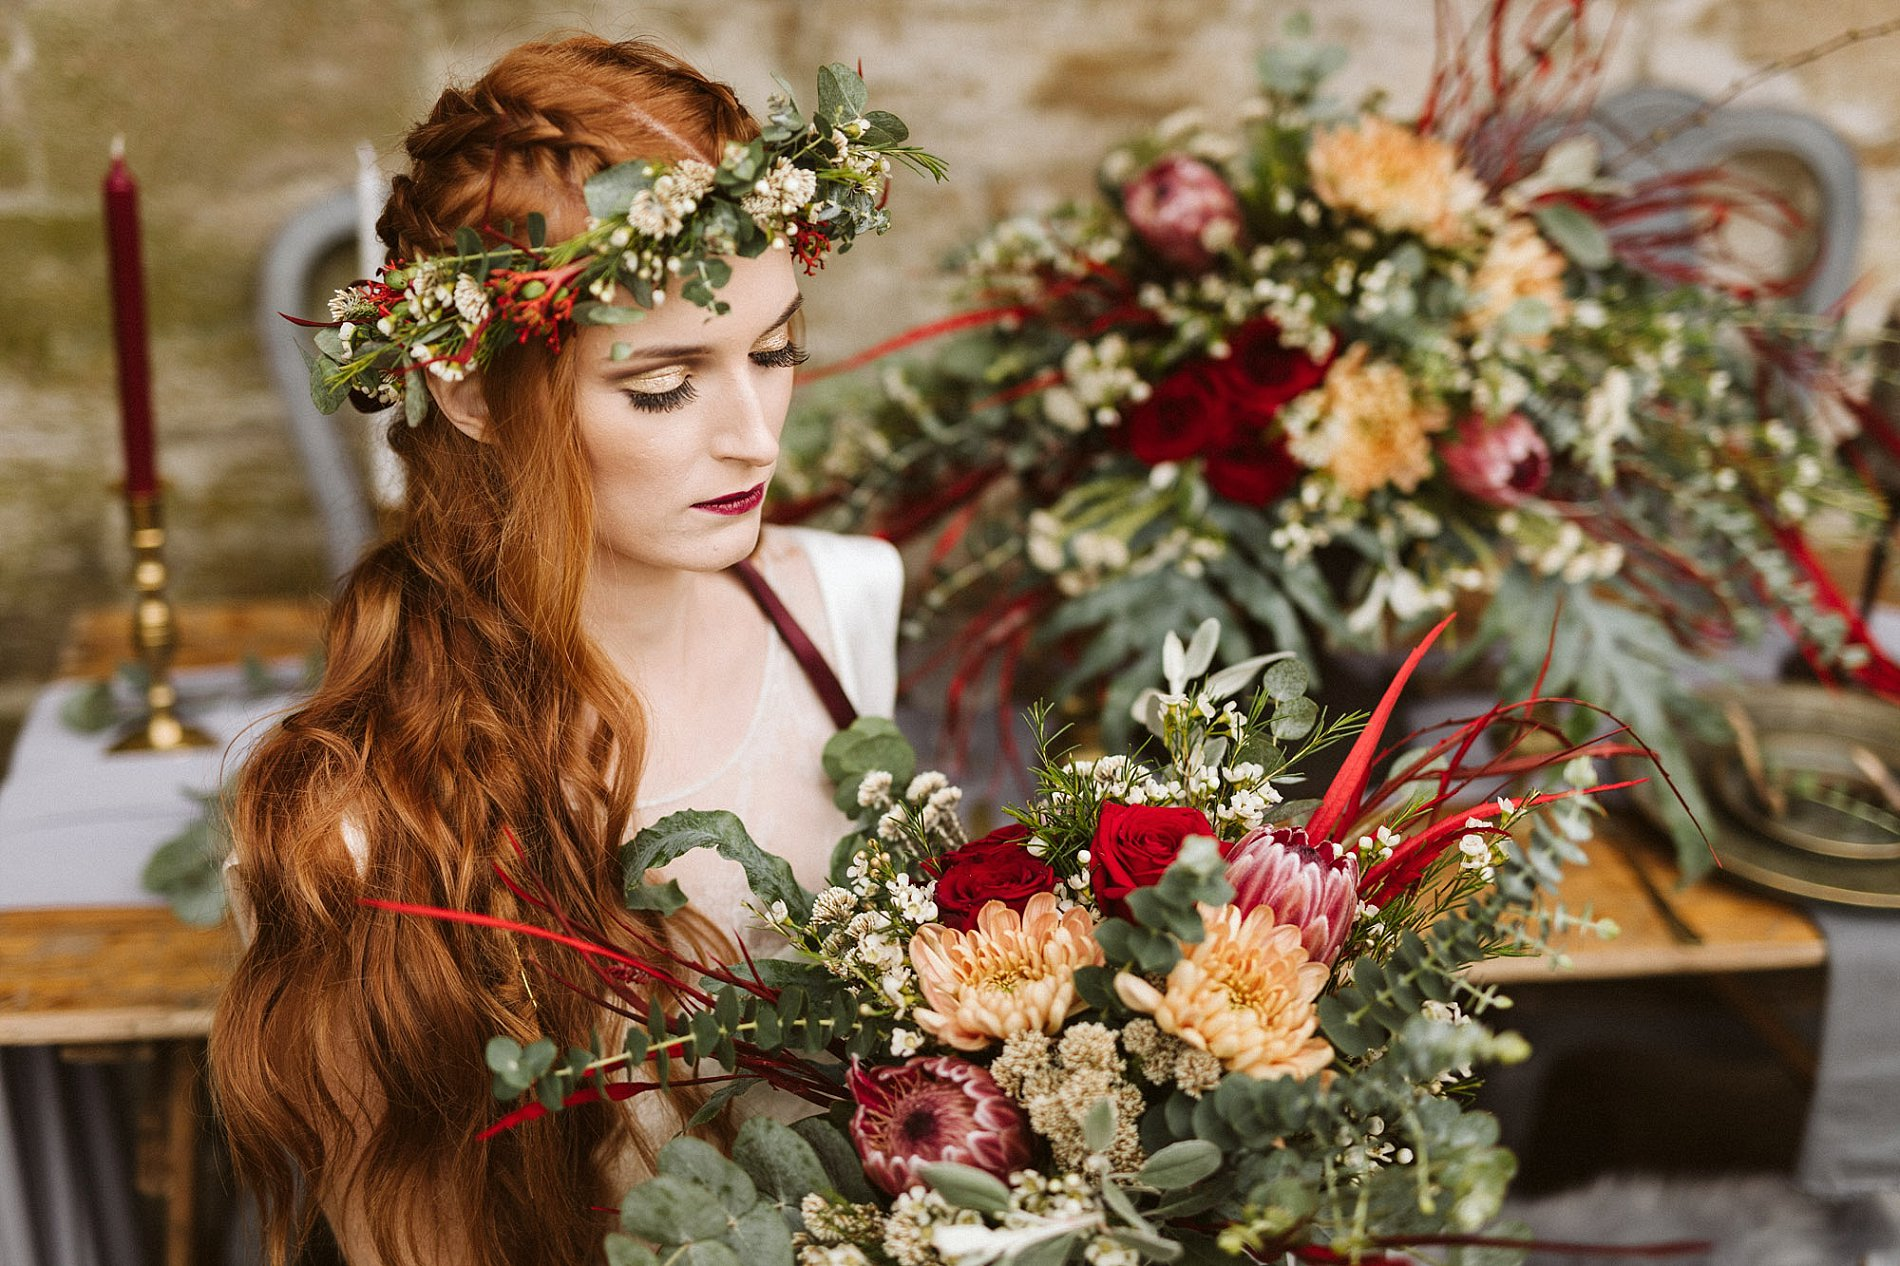 Game of Thrones Creative Bridal Shoot (c) Freya Raby (14)